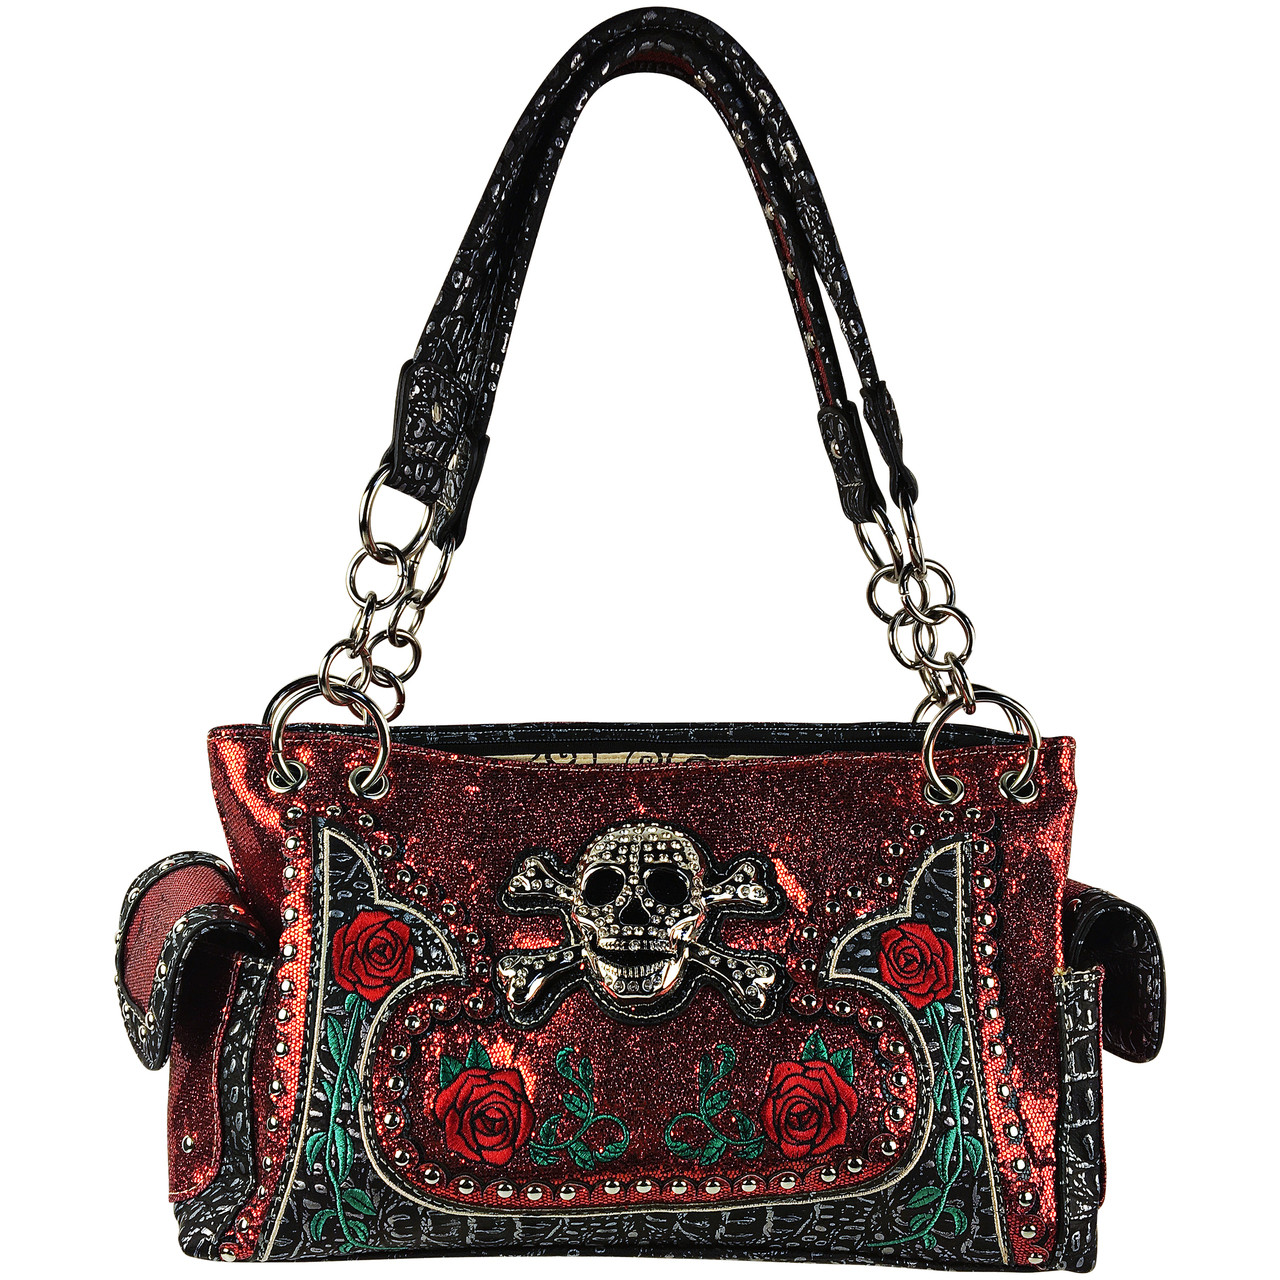 RED RHINESTONE GLITTER SKULL LOOK SHOULDER HANDBAG